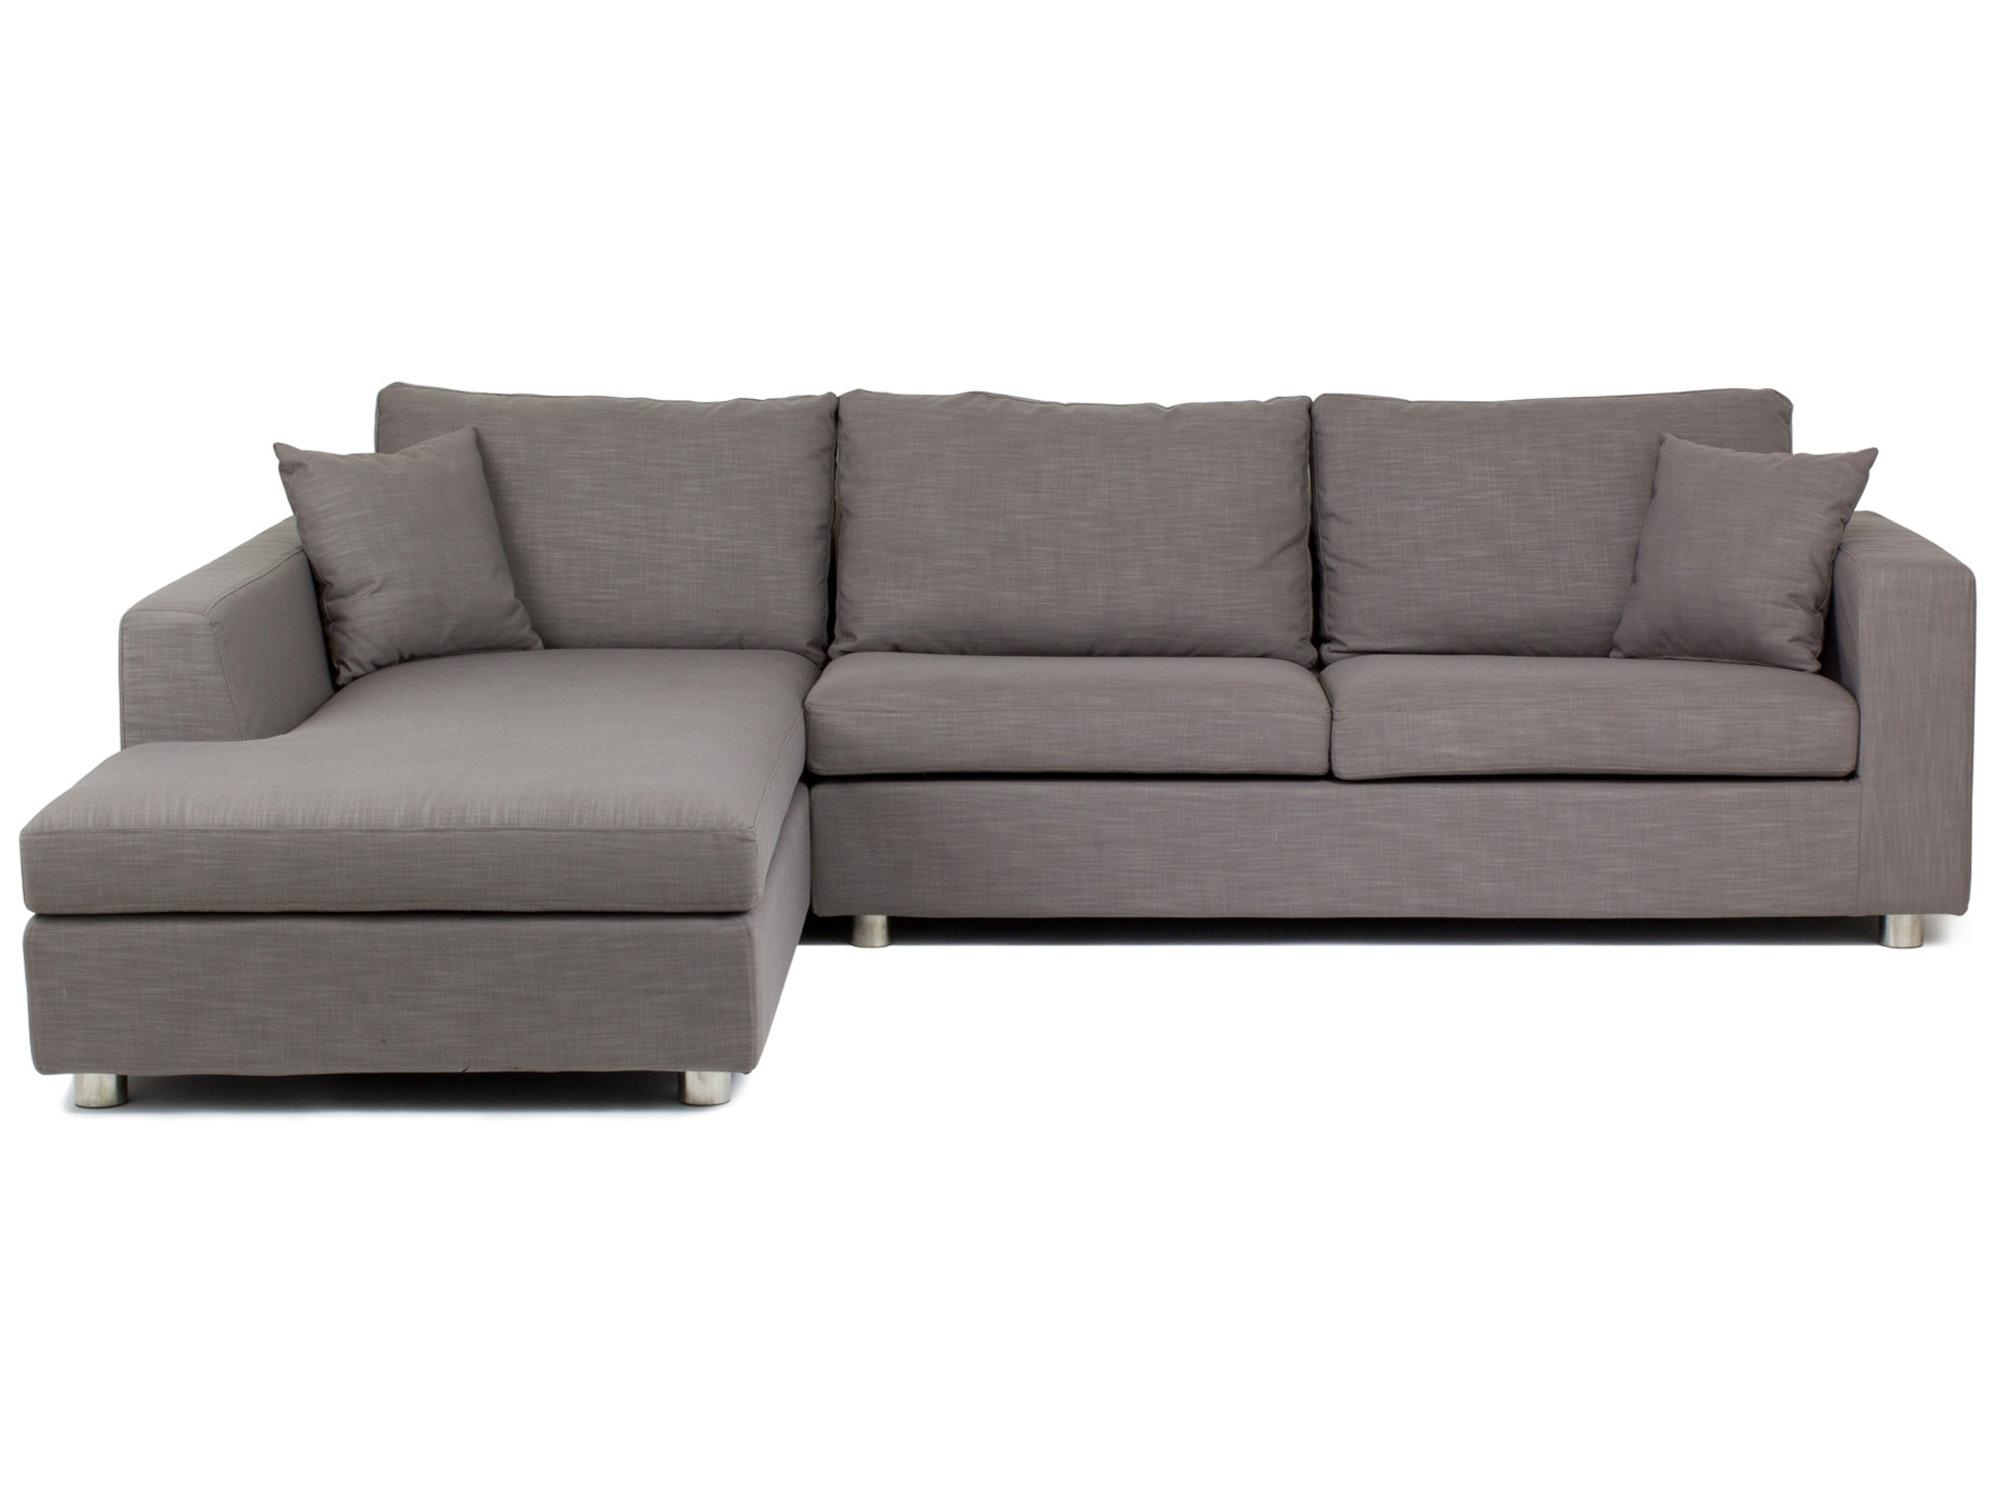 Furniture: Friheten Sofa Bed Review | Ikea Sofa Beds | Ikea Sofa Pertaining To Sofa Beds (Image 5 of 20)